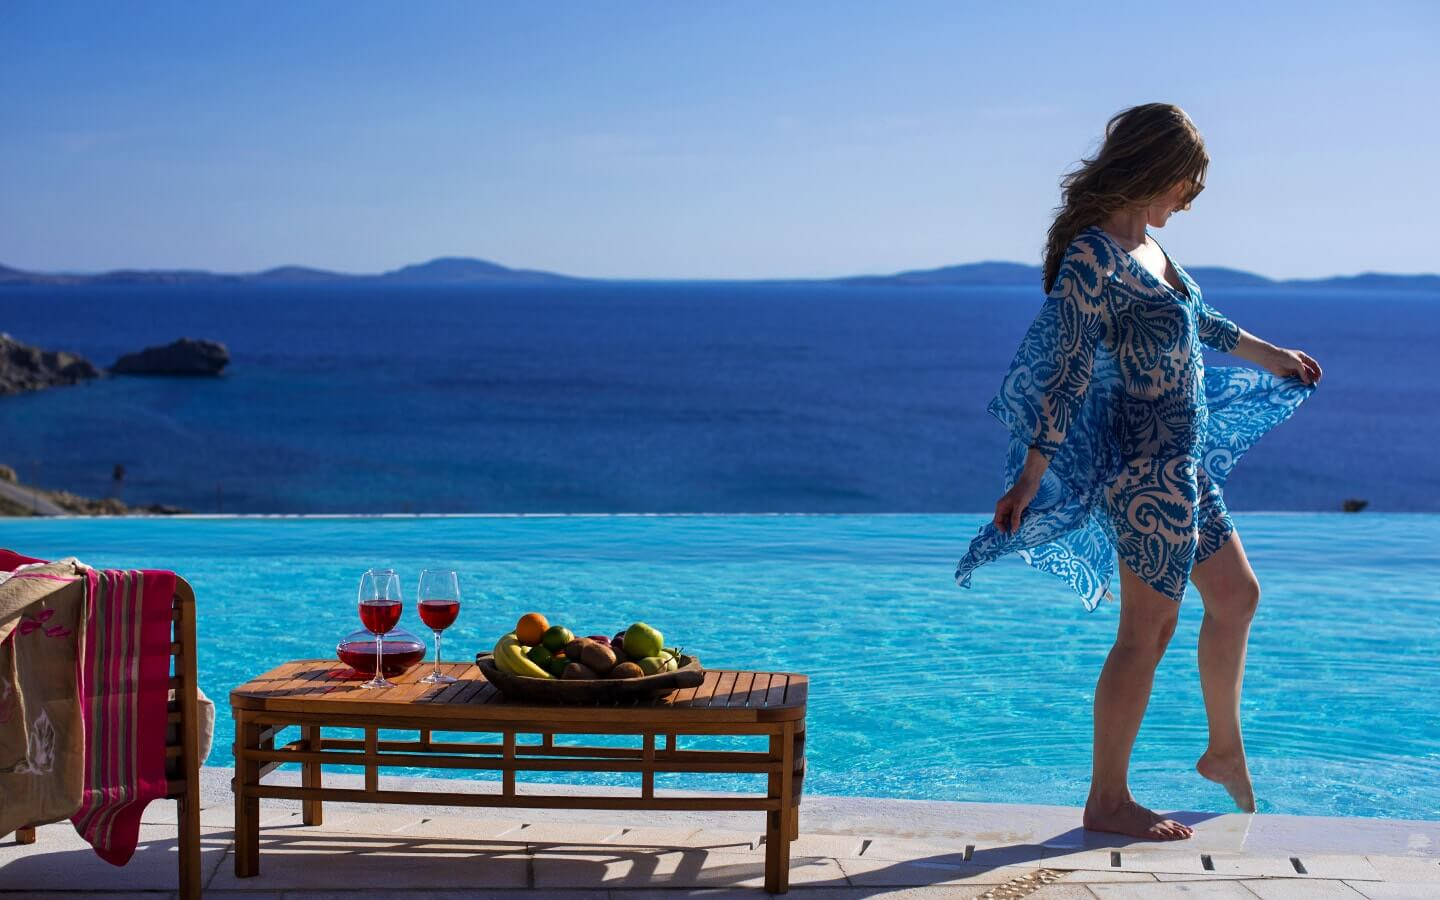 A lady dips her toe in the San Marco luxury hotel infinity pool with a view of the sea in Mykonos